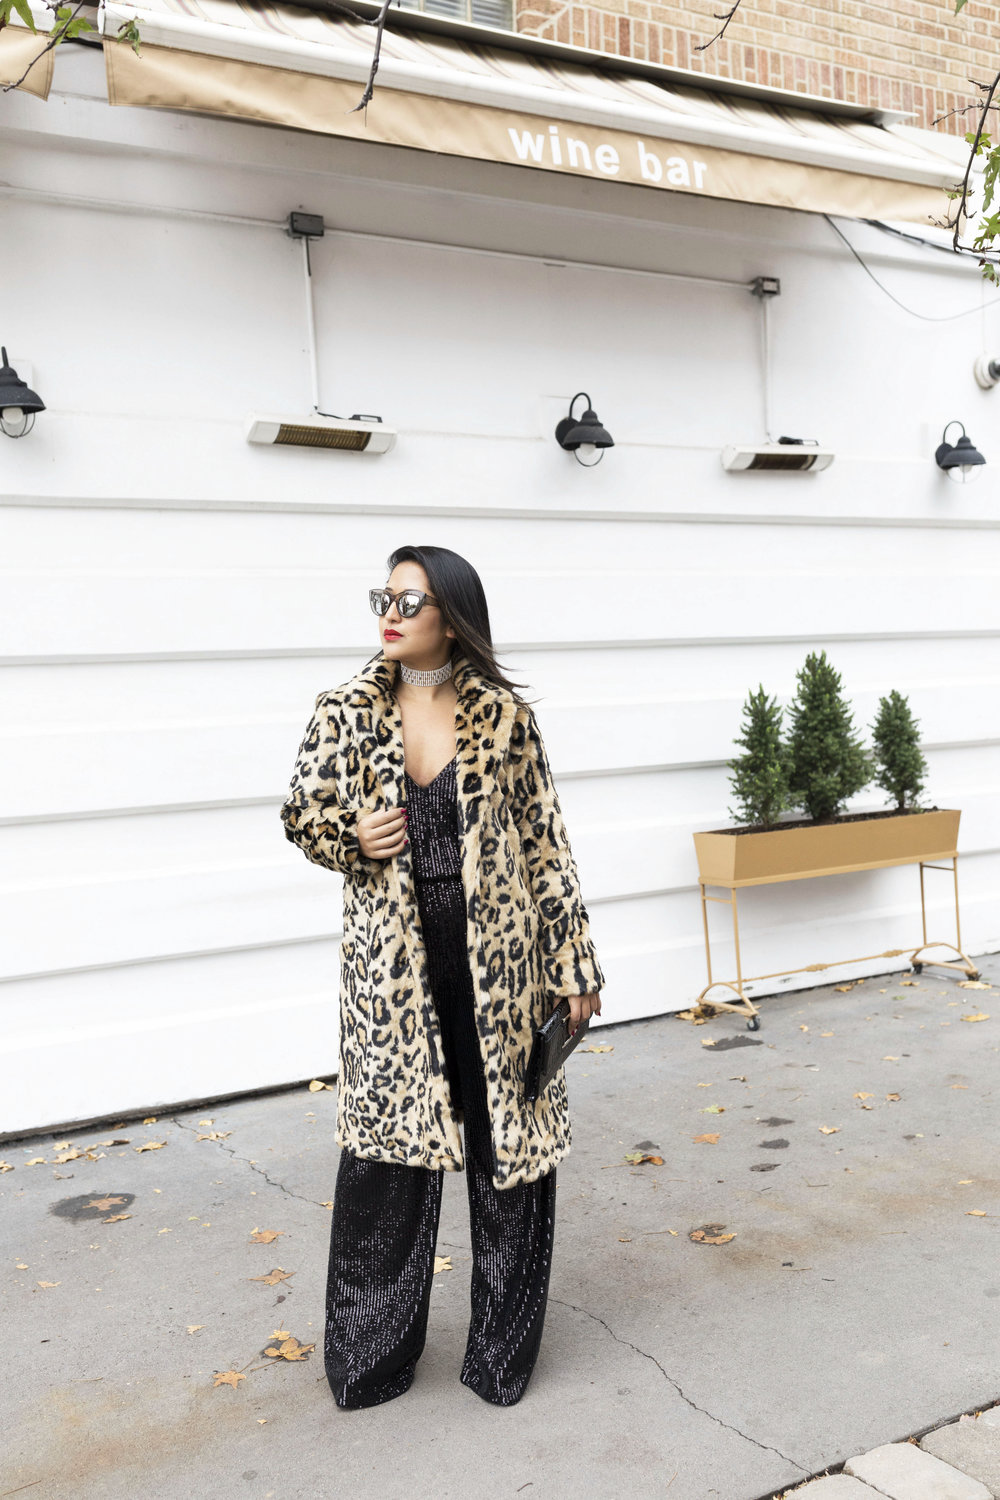 Krity S x New Years Eve Outfit x Sequin Jumpsuit and Cheetah Faux Fur1.jpg